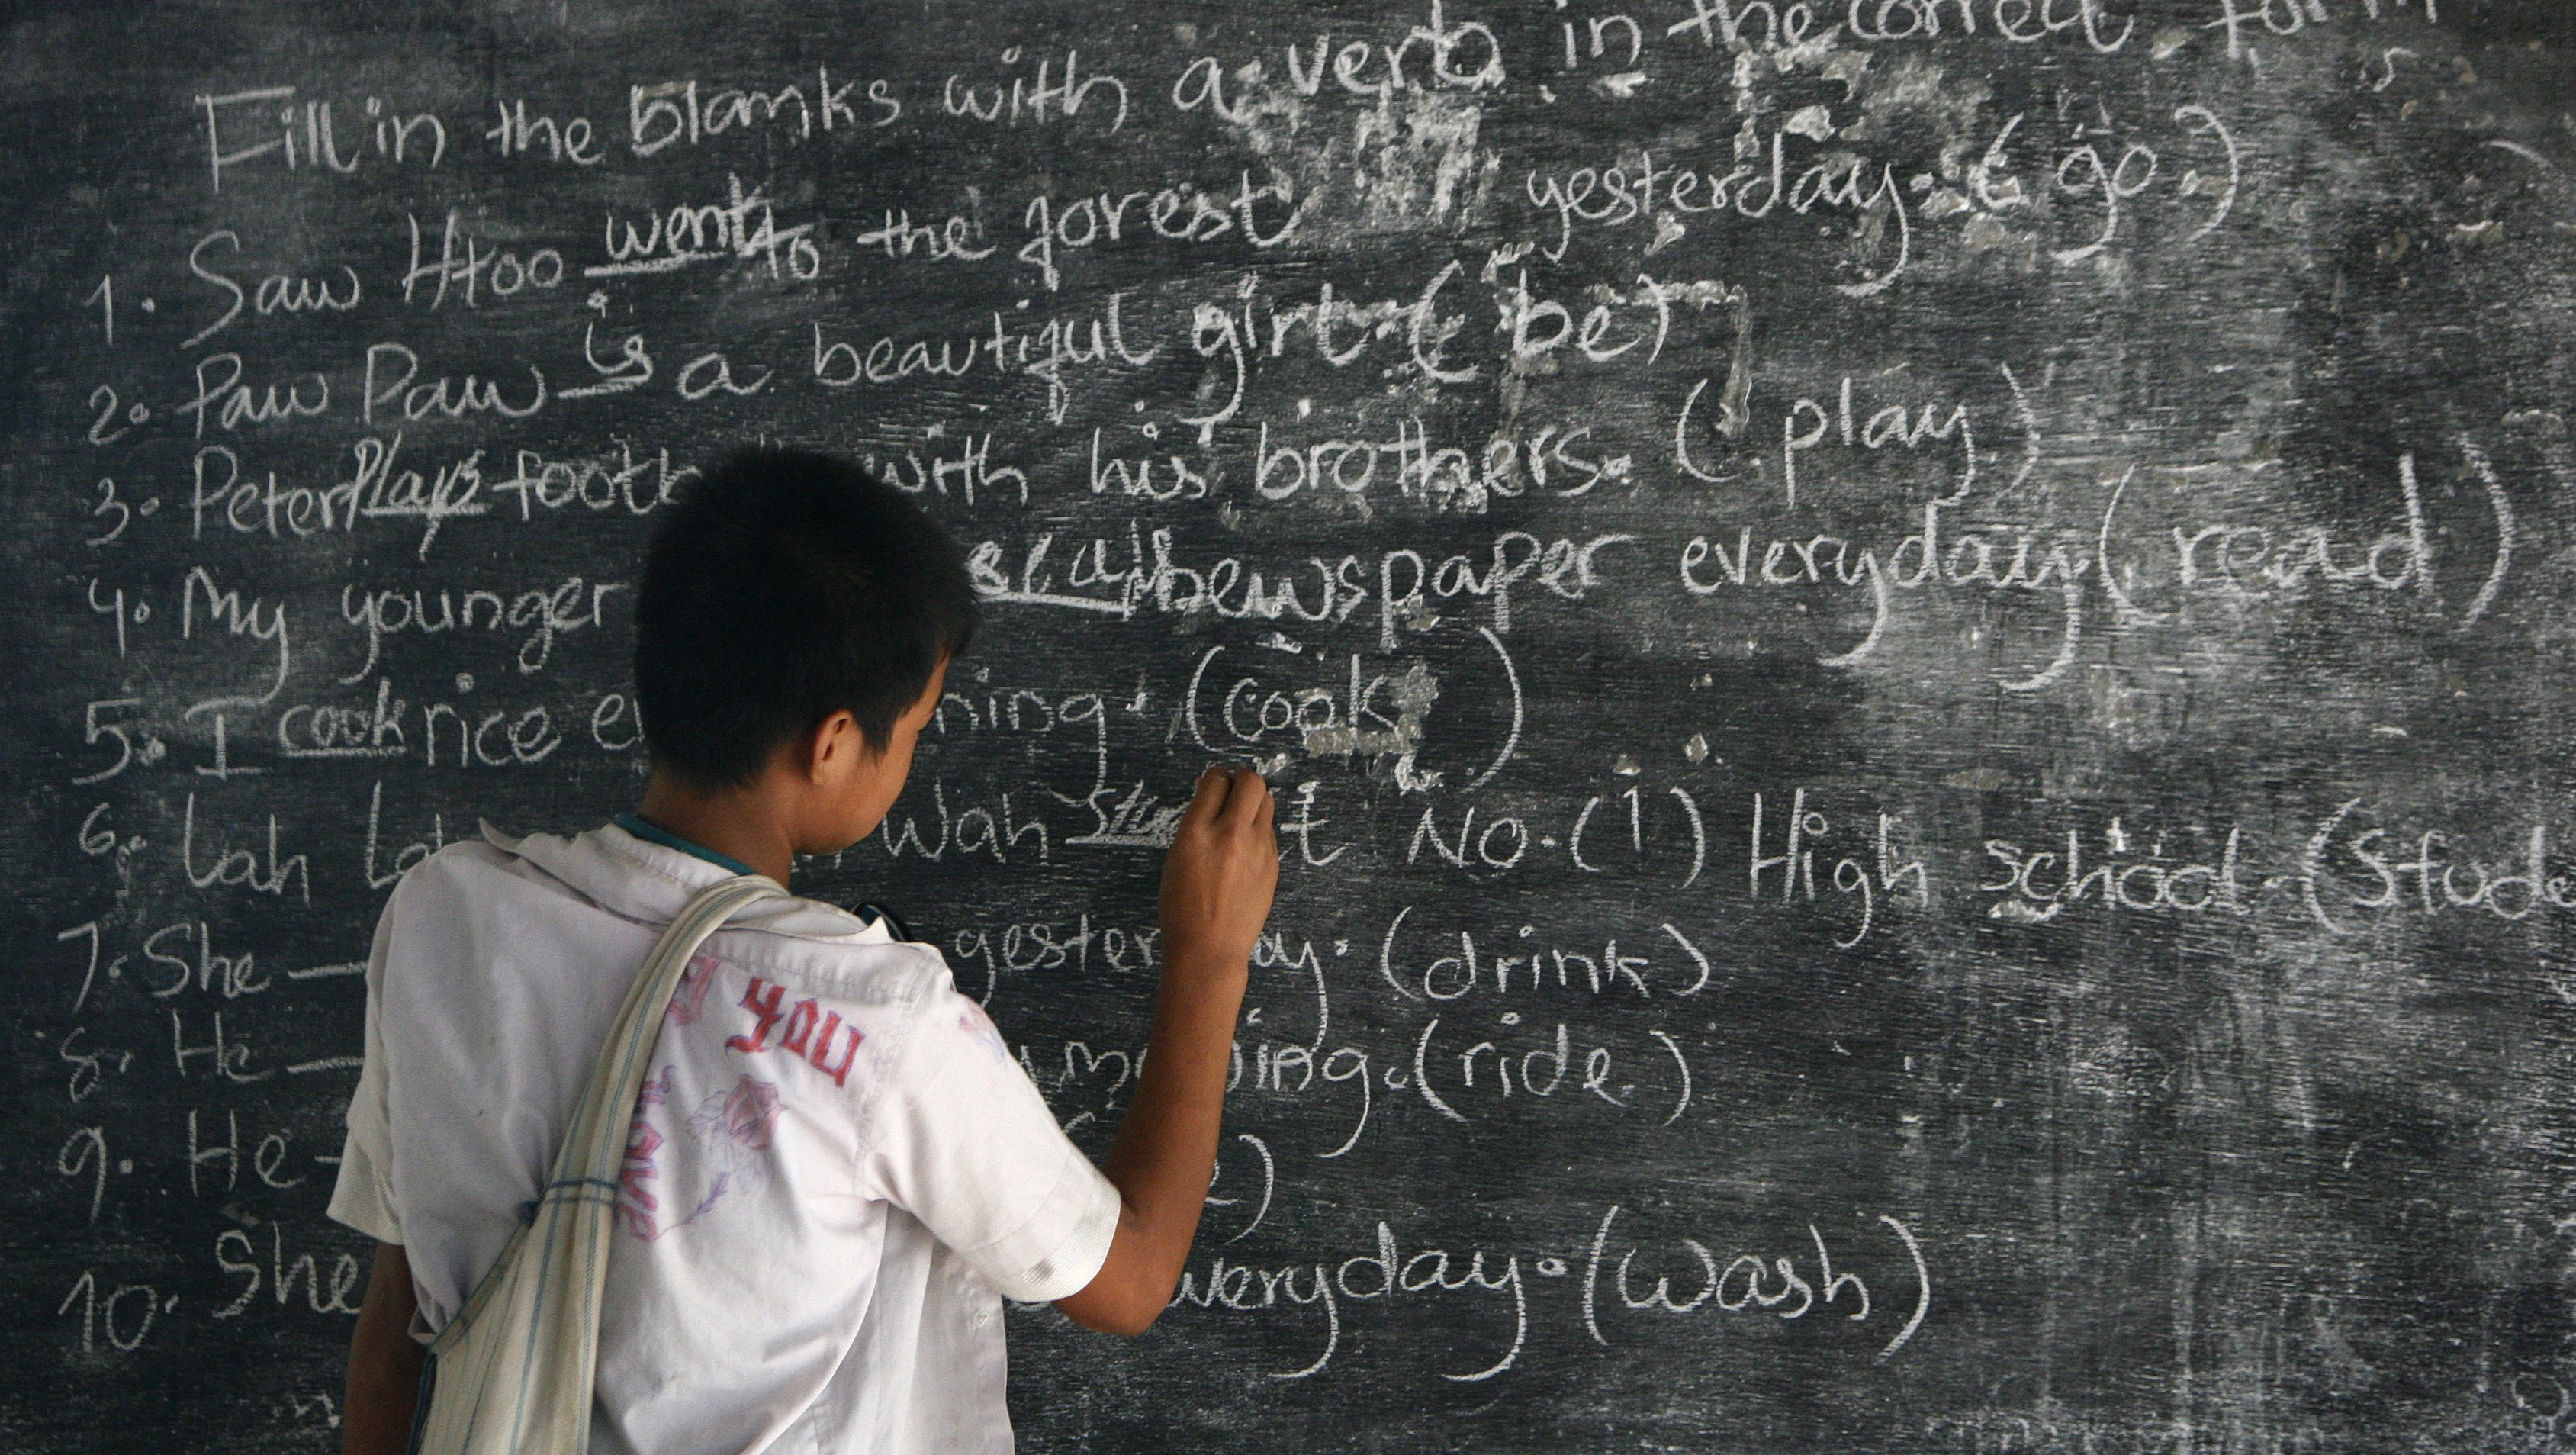 An ethnic Karen student learns English at a school in Mae La camp, near the Thai-Myanmar border in Mae Sot district, Tak province, 600 km (373 miles) north of Bangkok July 22, 2008. Mae La camp is the biggest refugee camp in nine camps along the Thai-Myanmar border which accommodates 48,000 people who are mainly ethnic  Karens. It is about four kilometres away from the Myanmar border and existed since 1984 as a small settlement for ethnic Karens who have fled the biggest Myanmar army offensive.  Picture taken July 22, 2008.  REUTERS/Chaiwat Subprasom (THAILAND) - RTX87IY